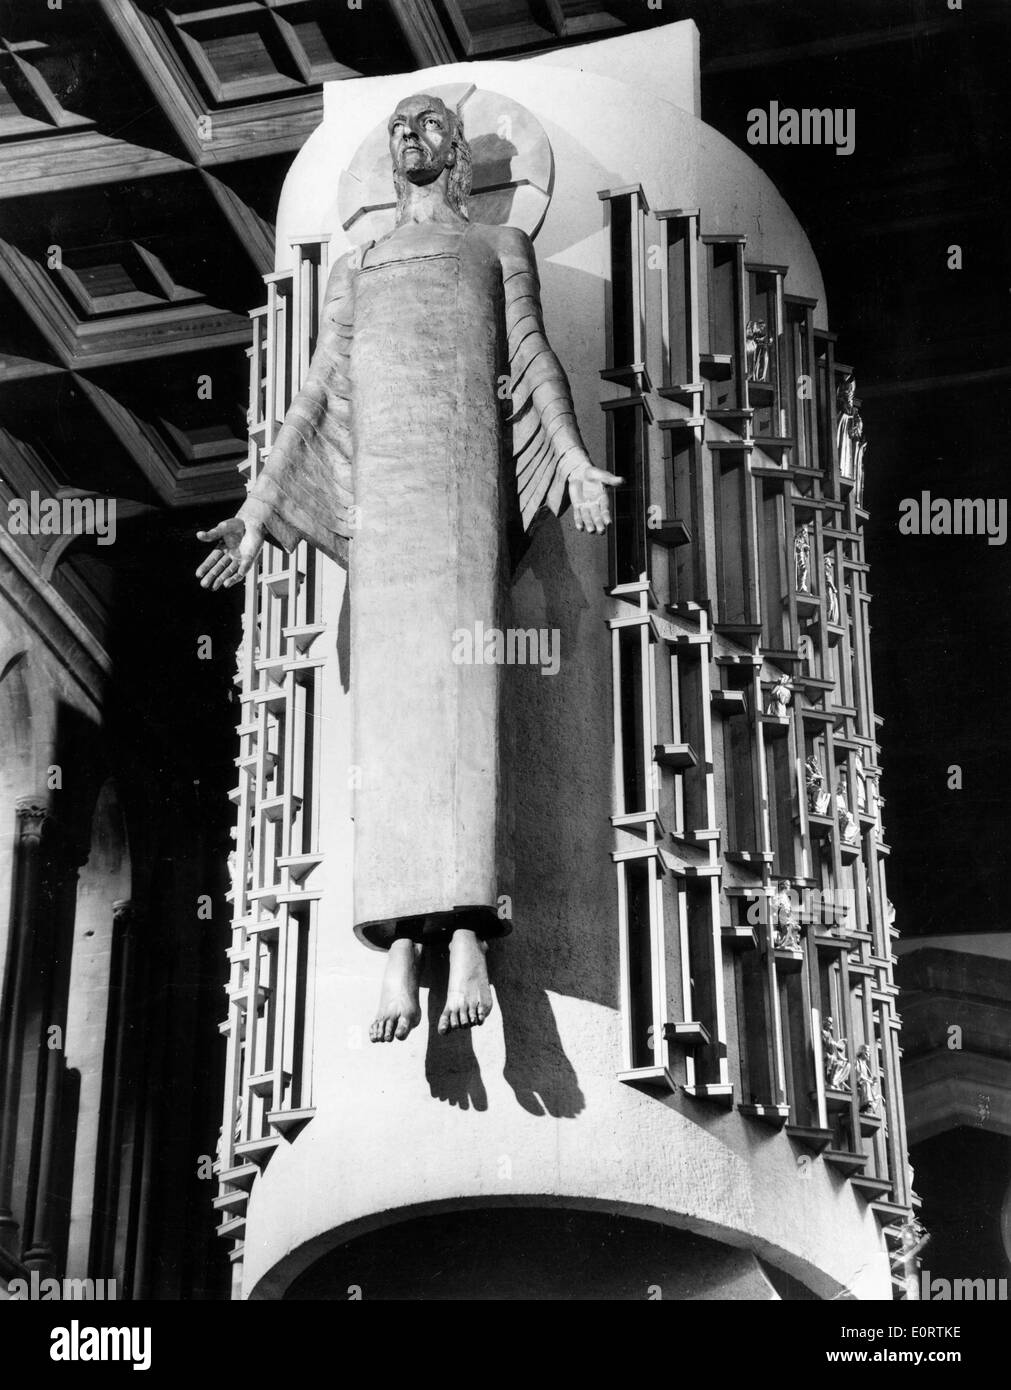 Jacob Epstein's sculpture 'Christ in Majesty' - Stock Image